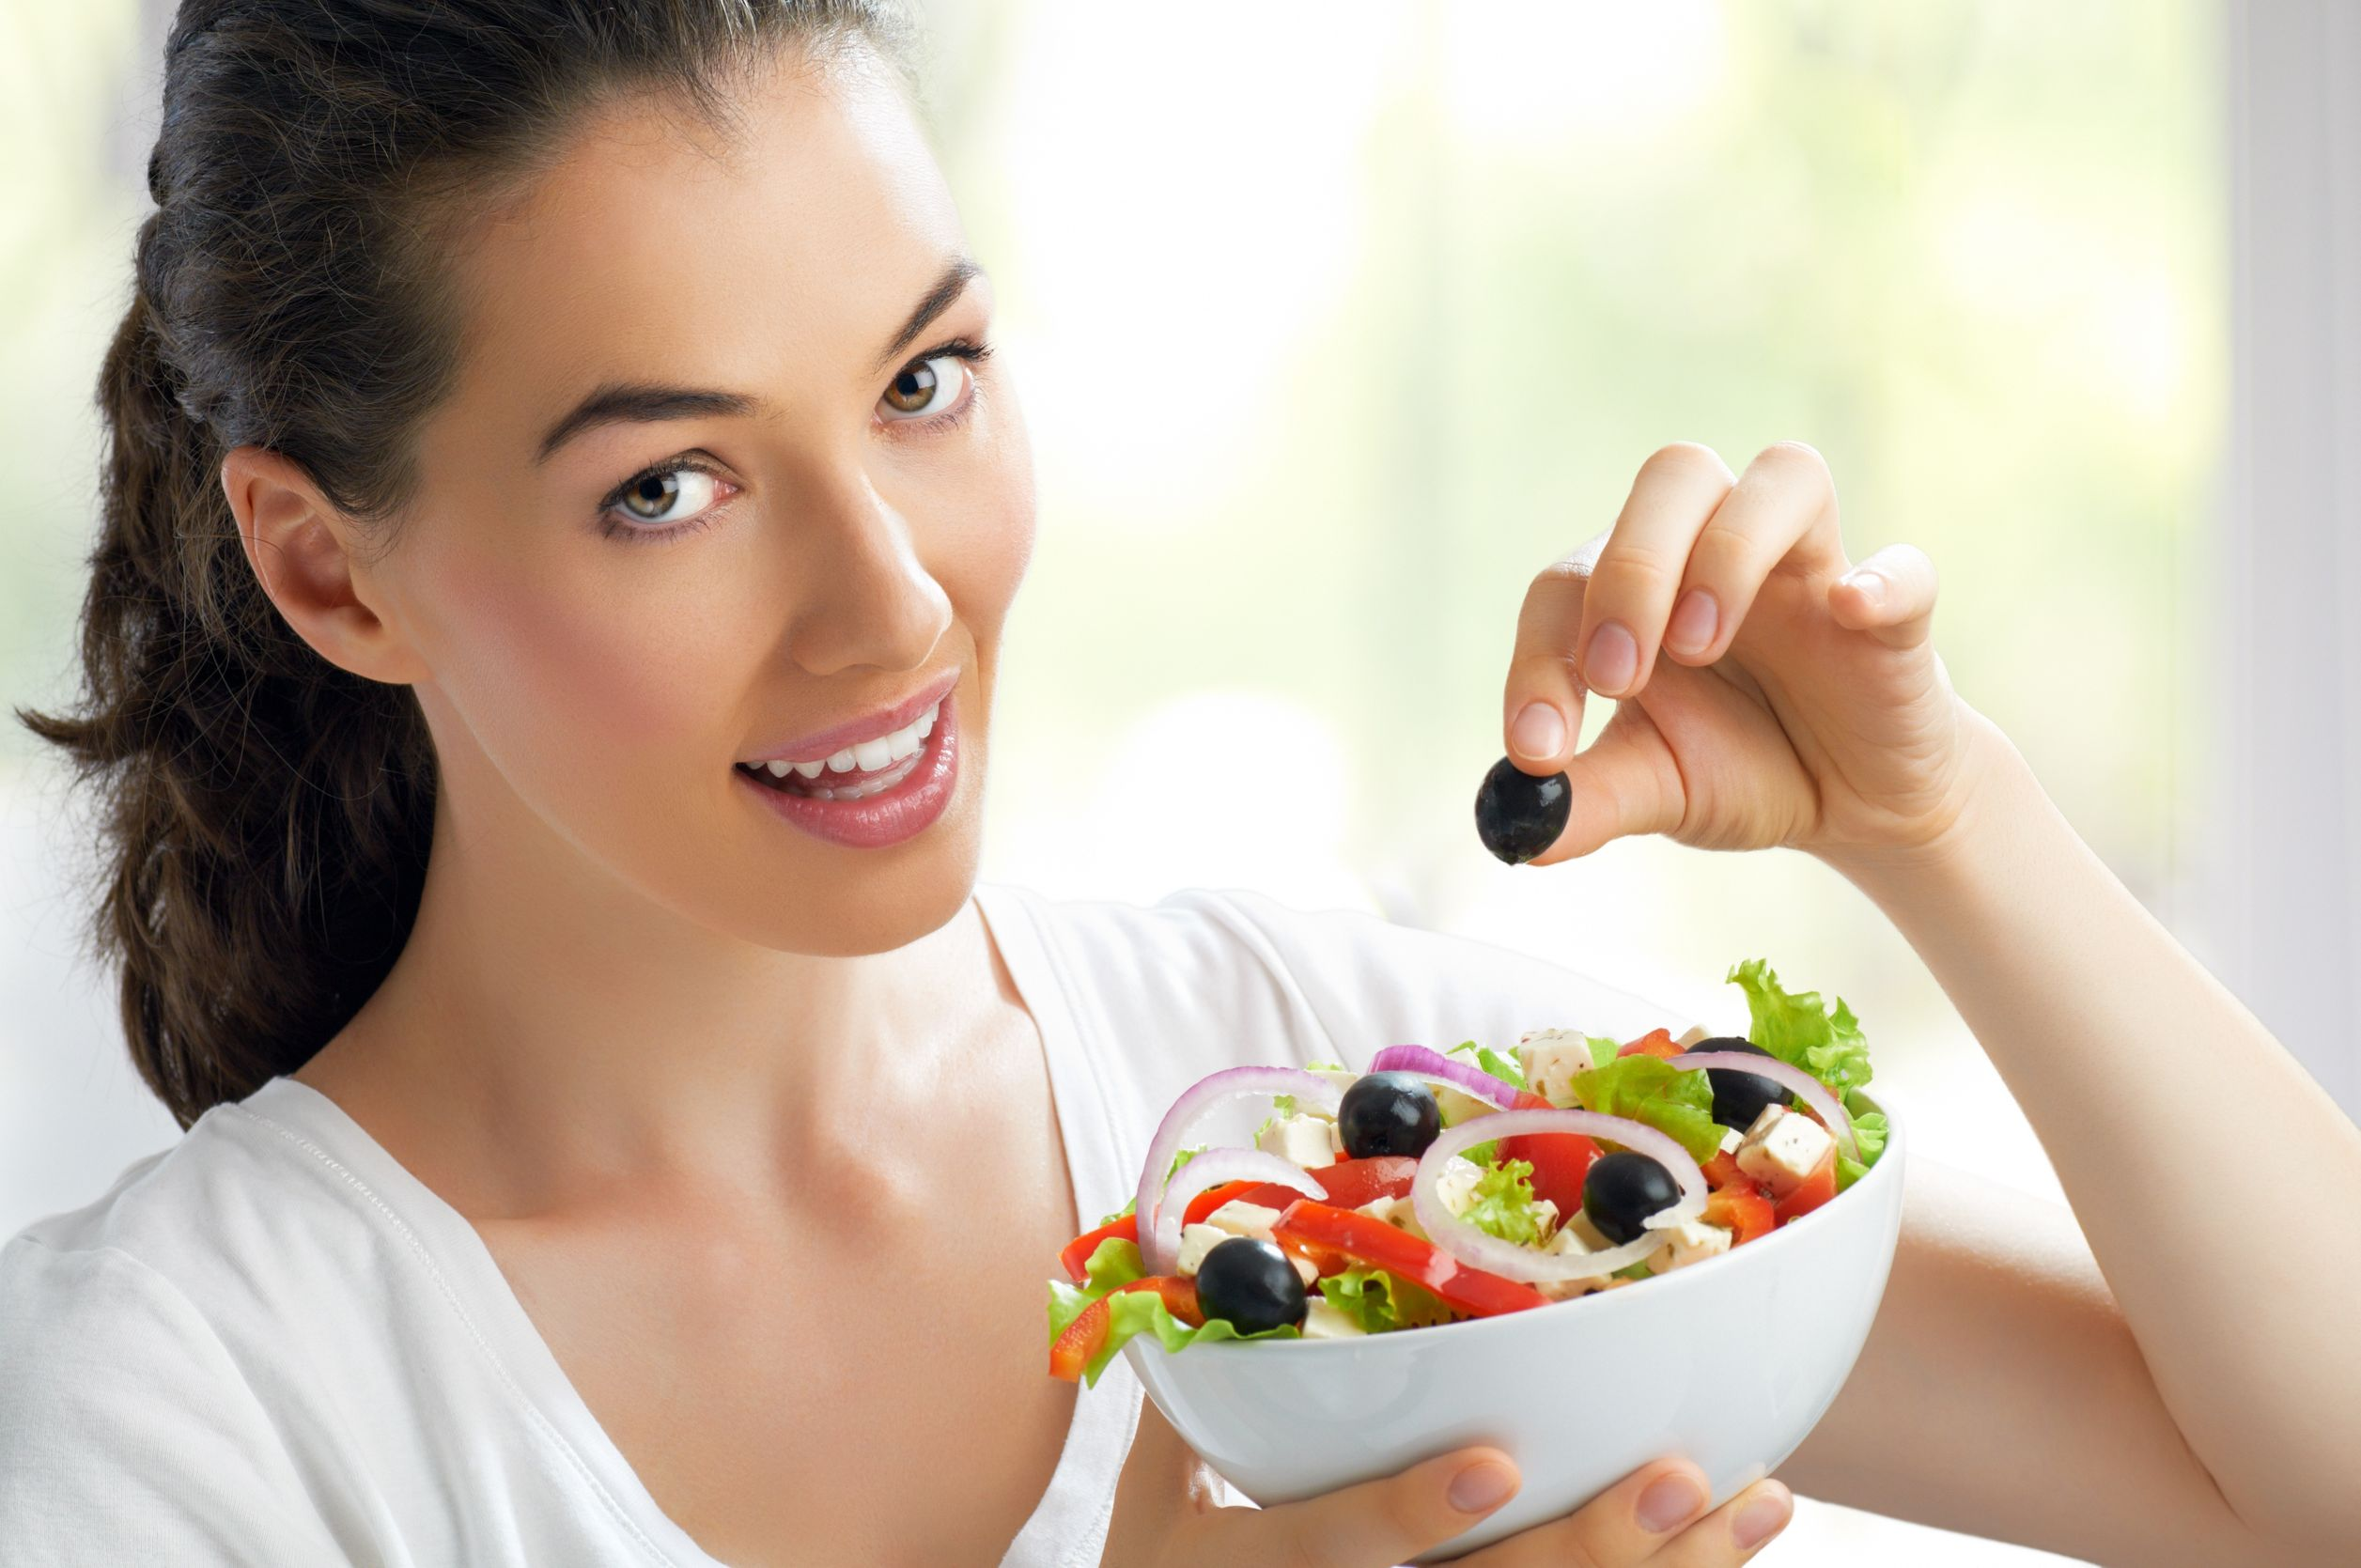 Tips Frevent Food Cravings